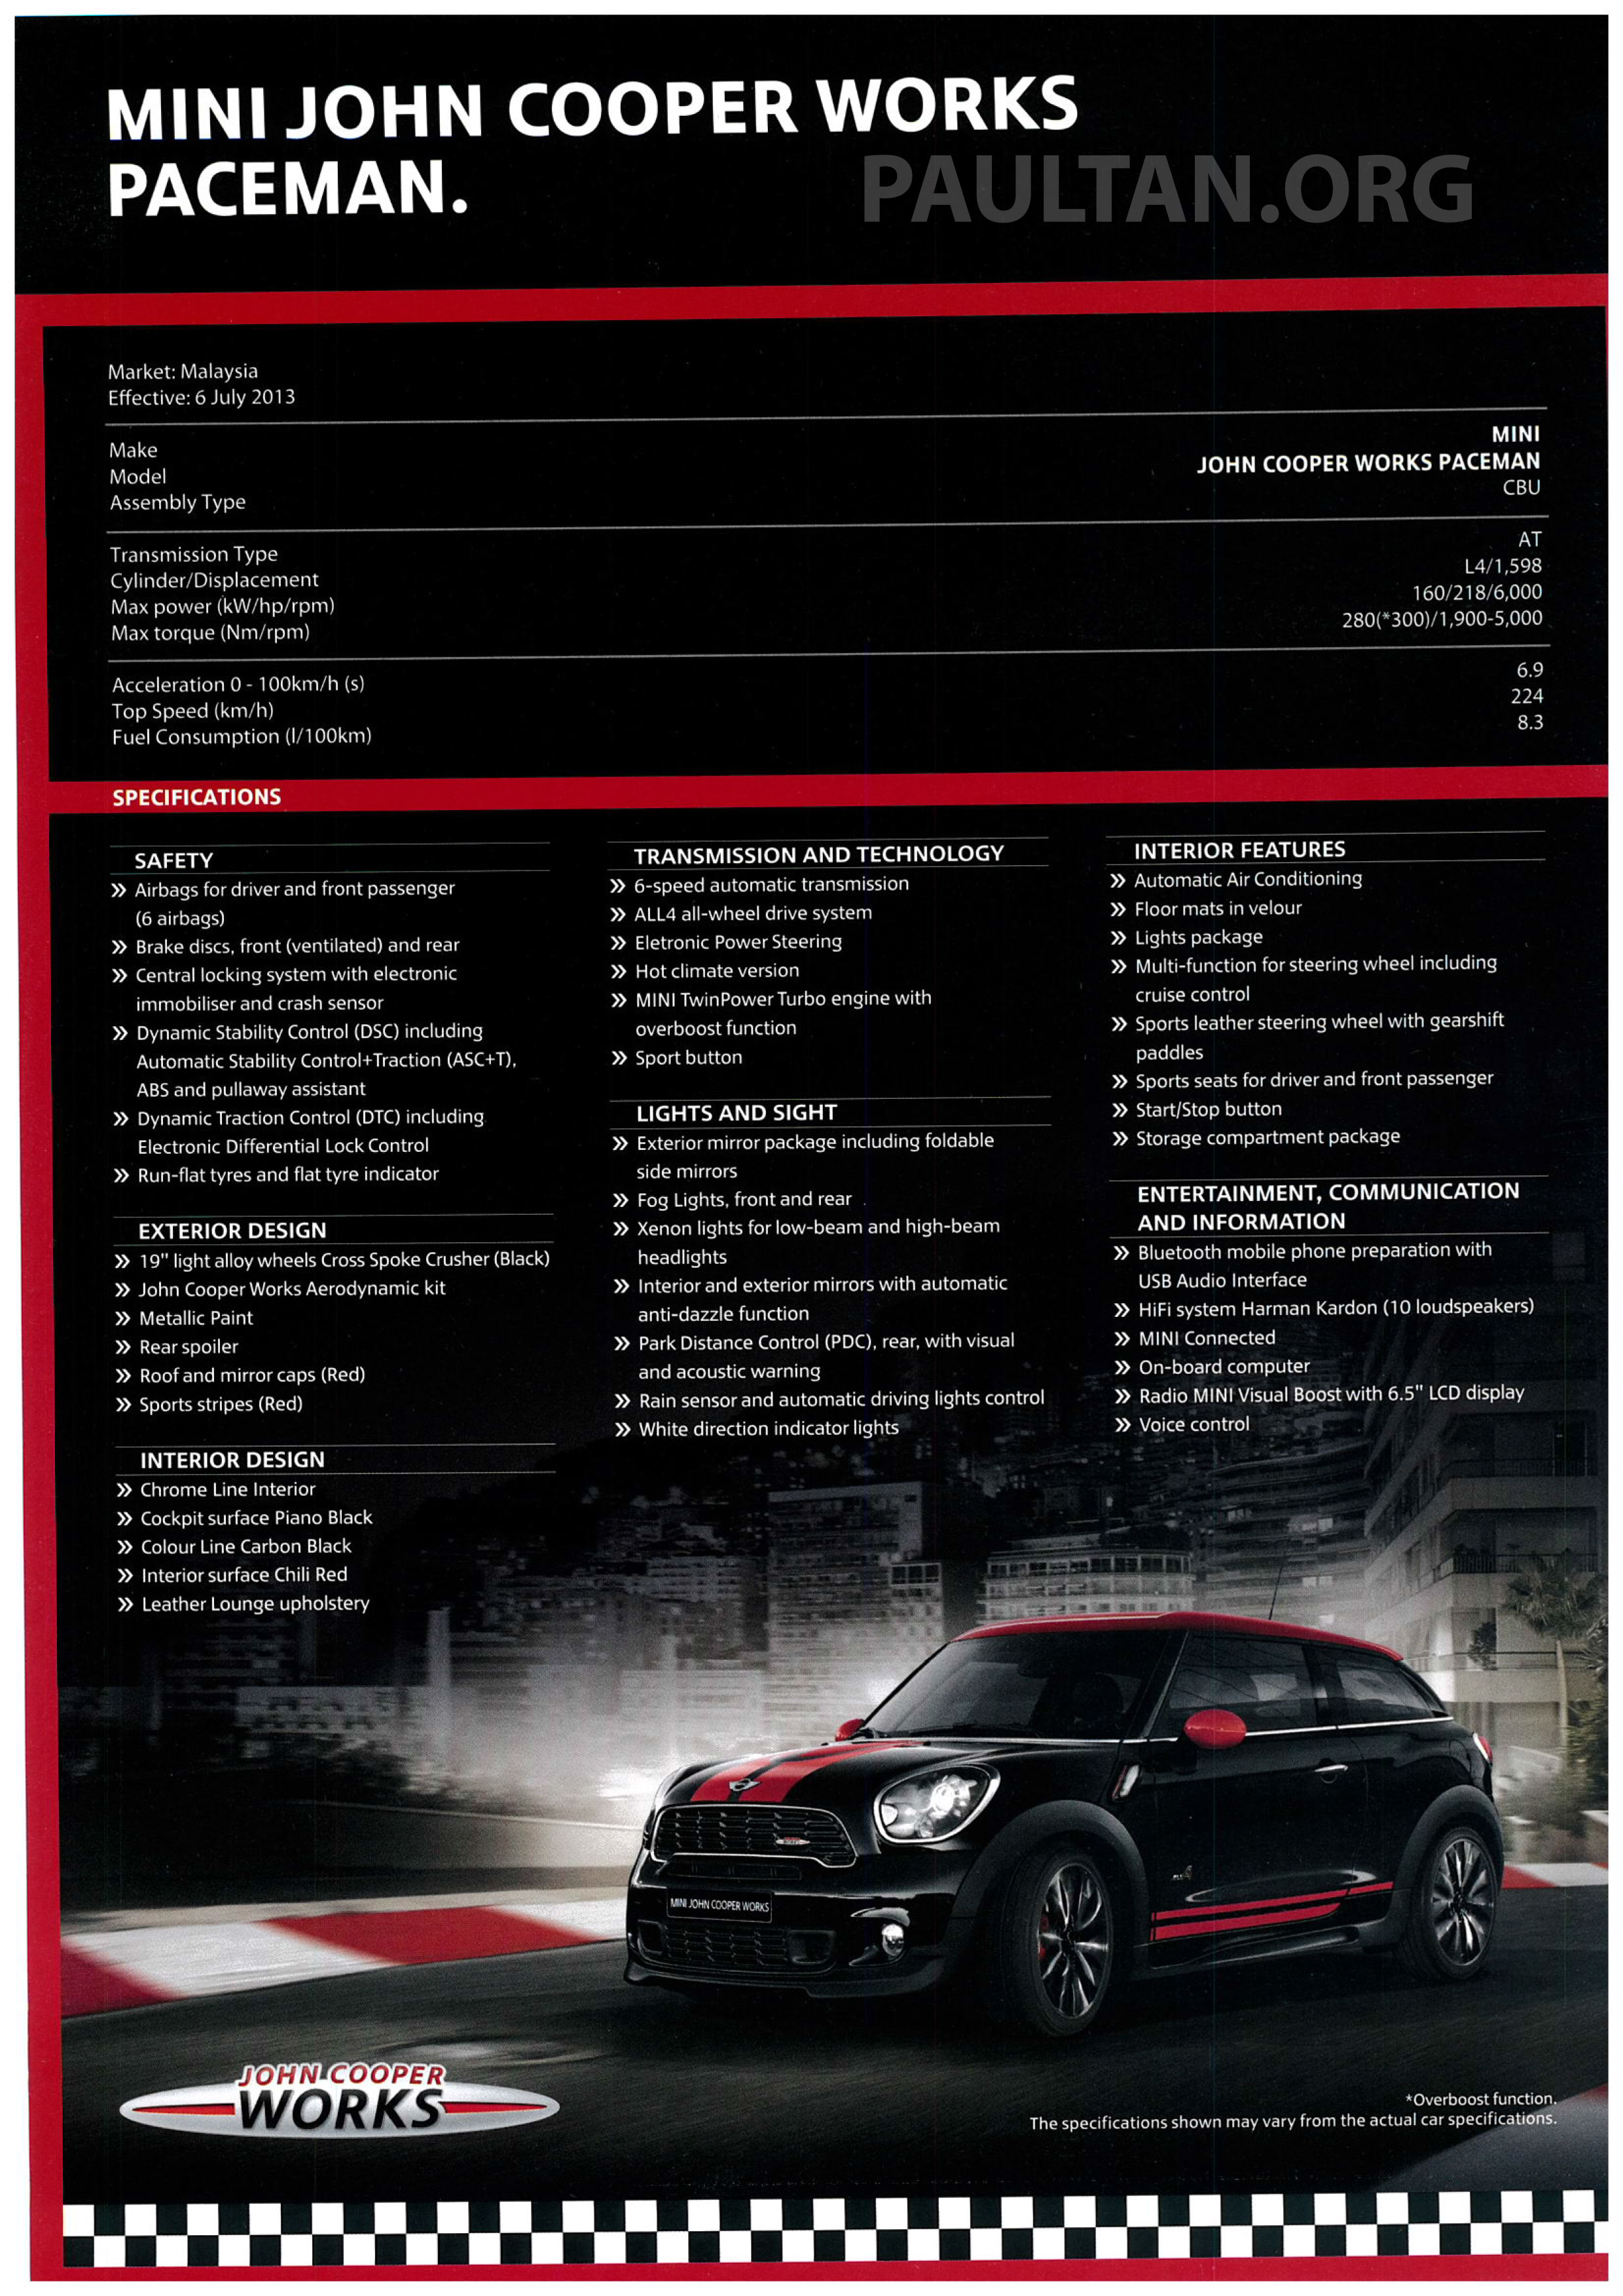 MINI JCW Hatch, Coupe, Countryman and Paceman now available in